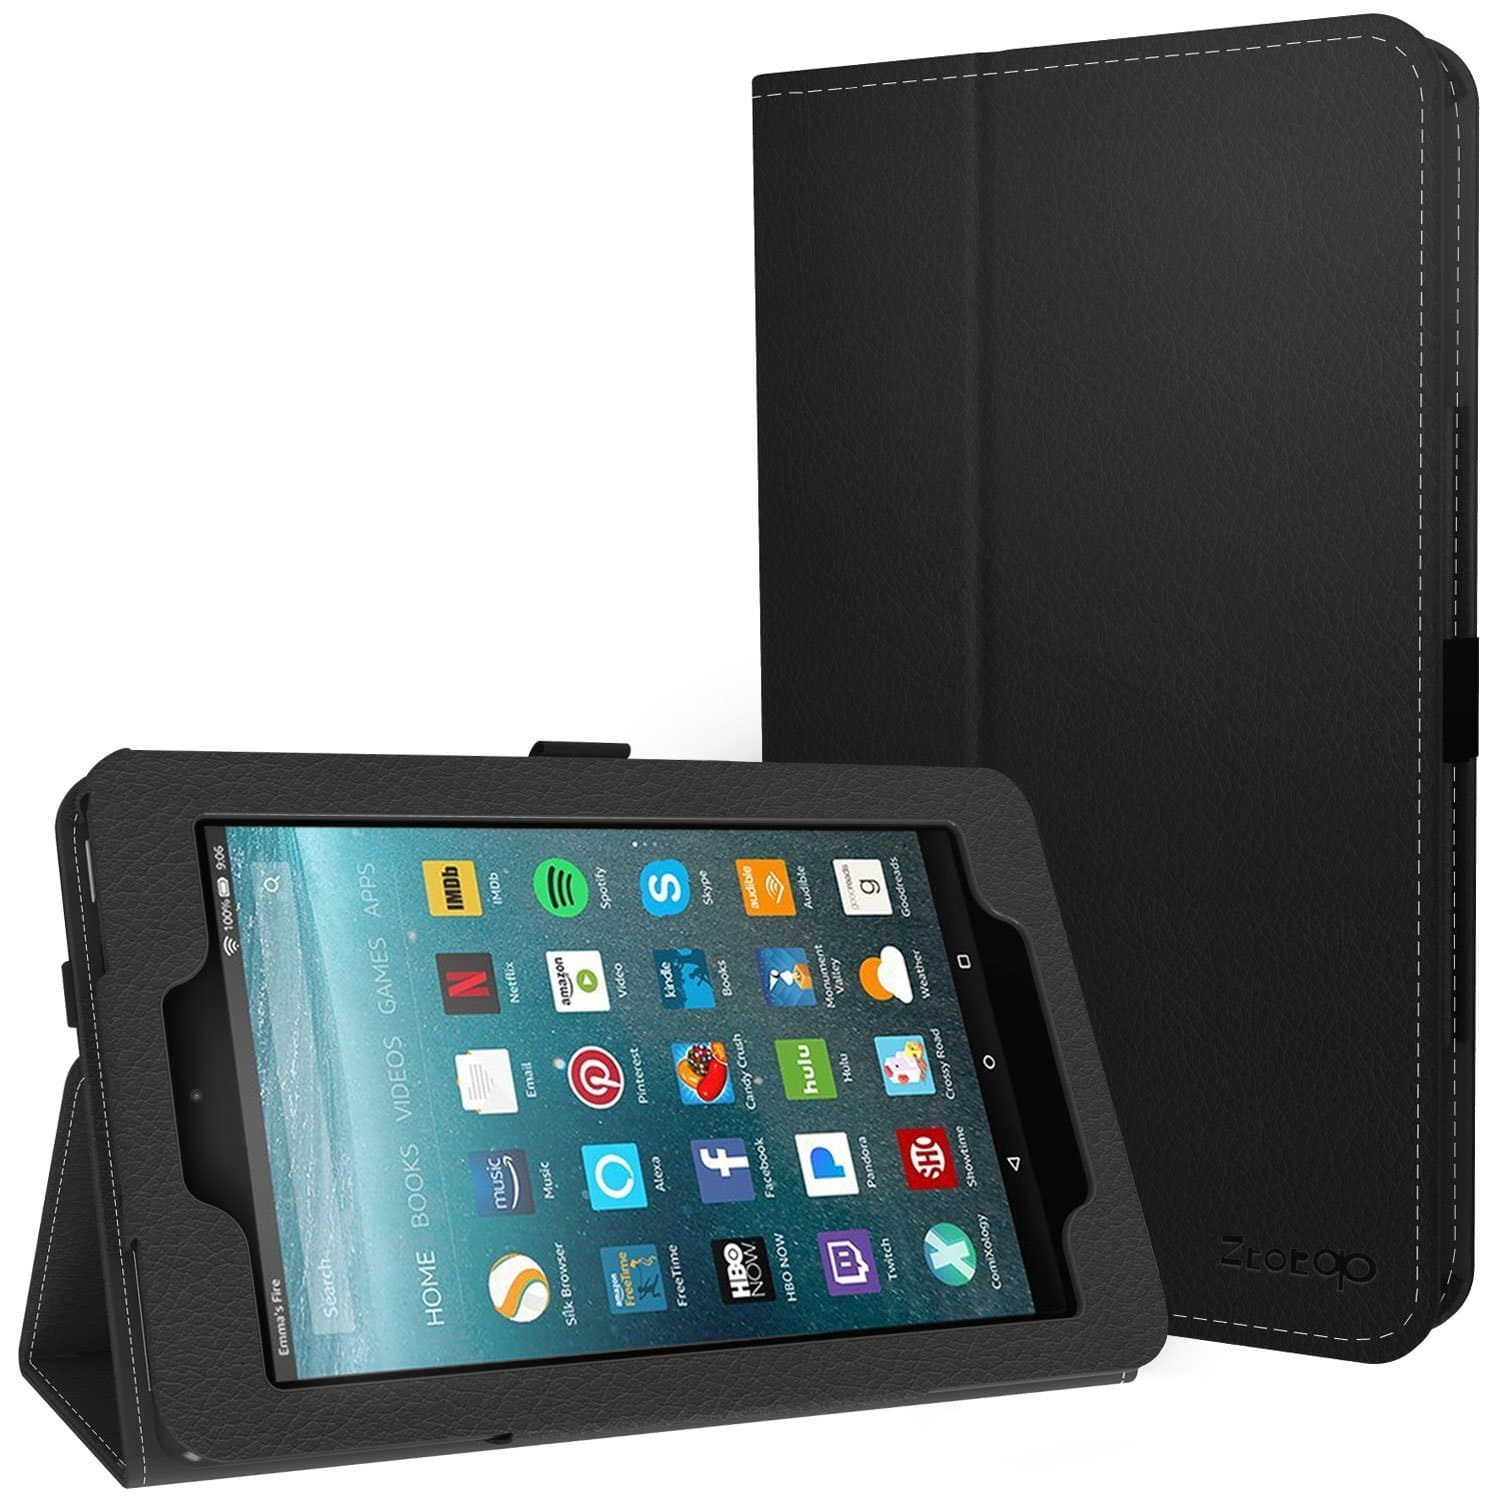 Folio Case w/ Slim Folding Stand for Amazon Fire 7 & 8 Tablet for $4.49+